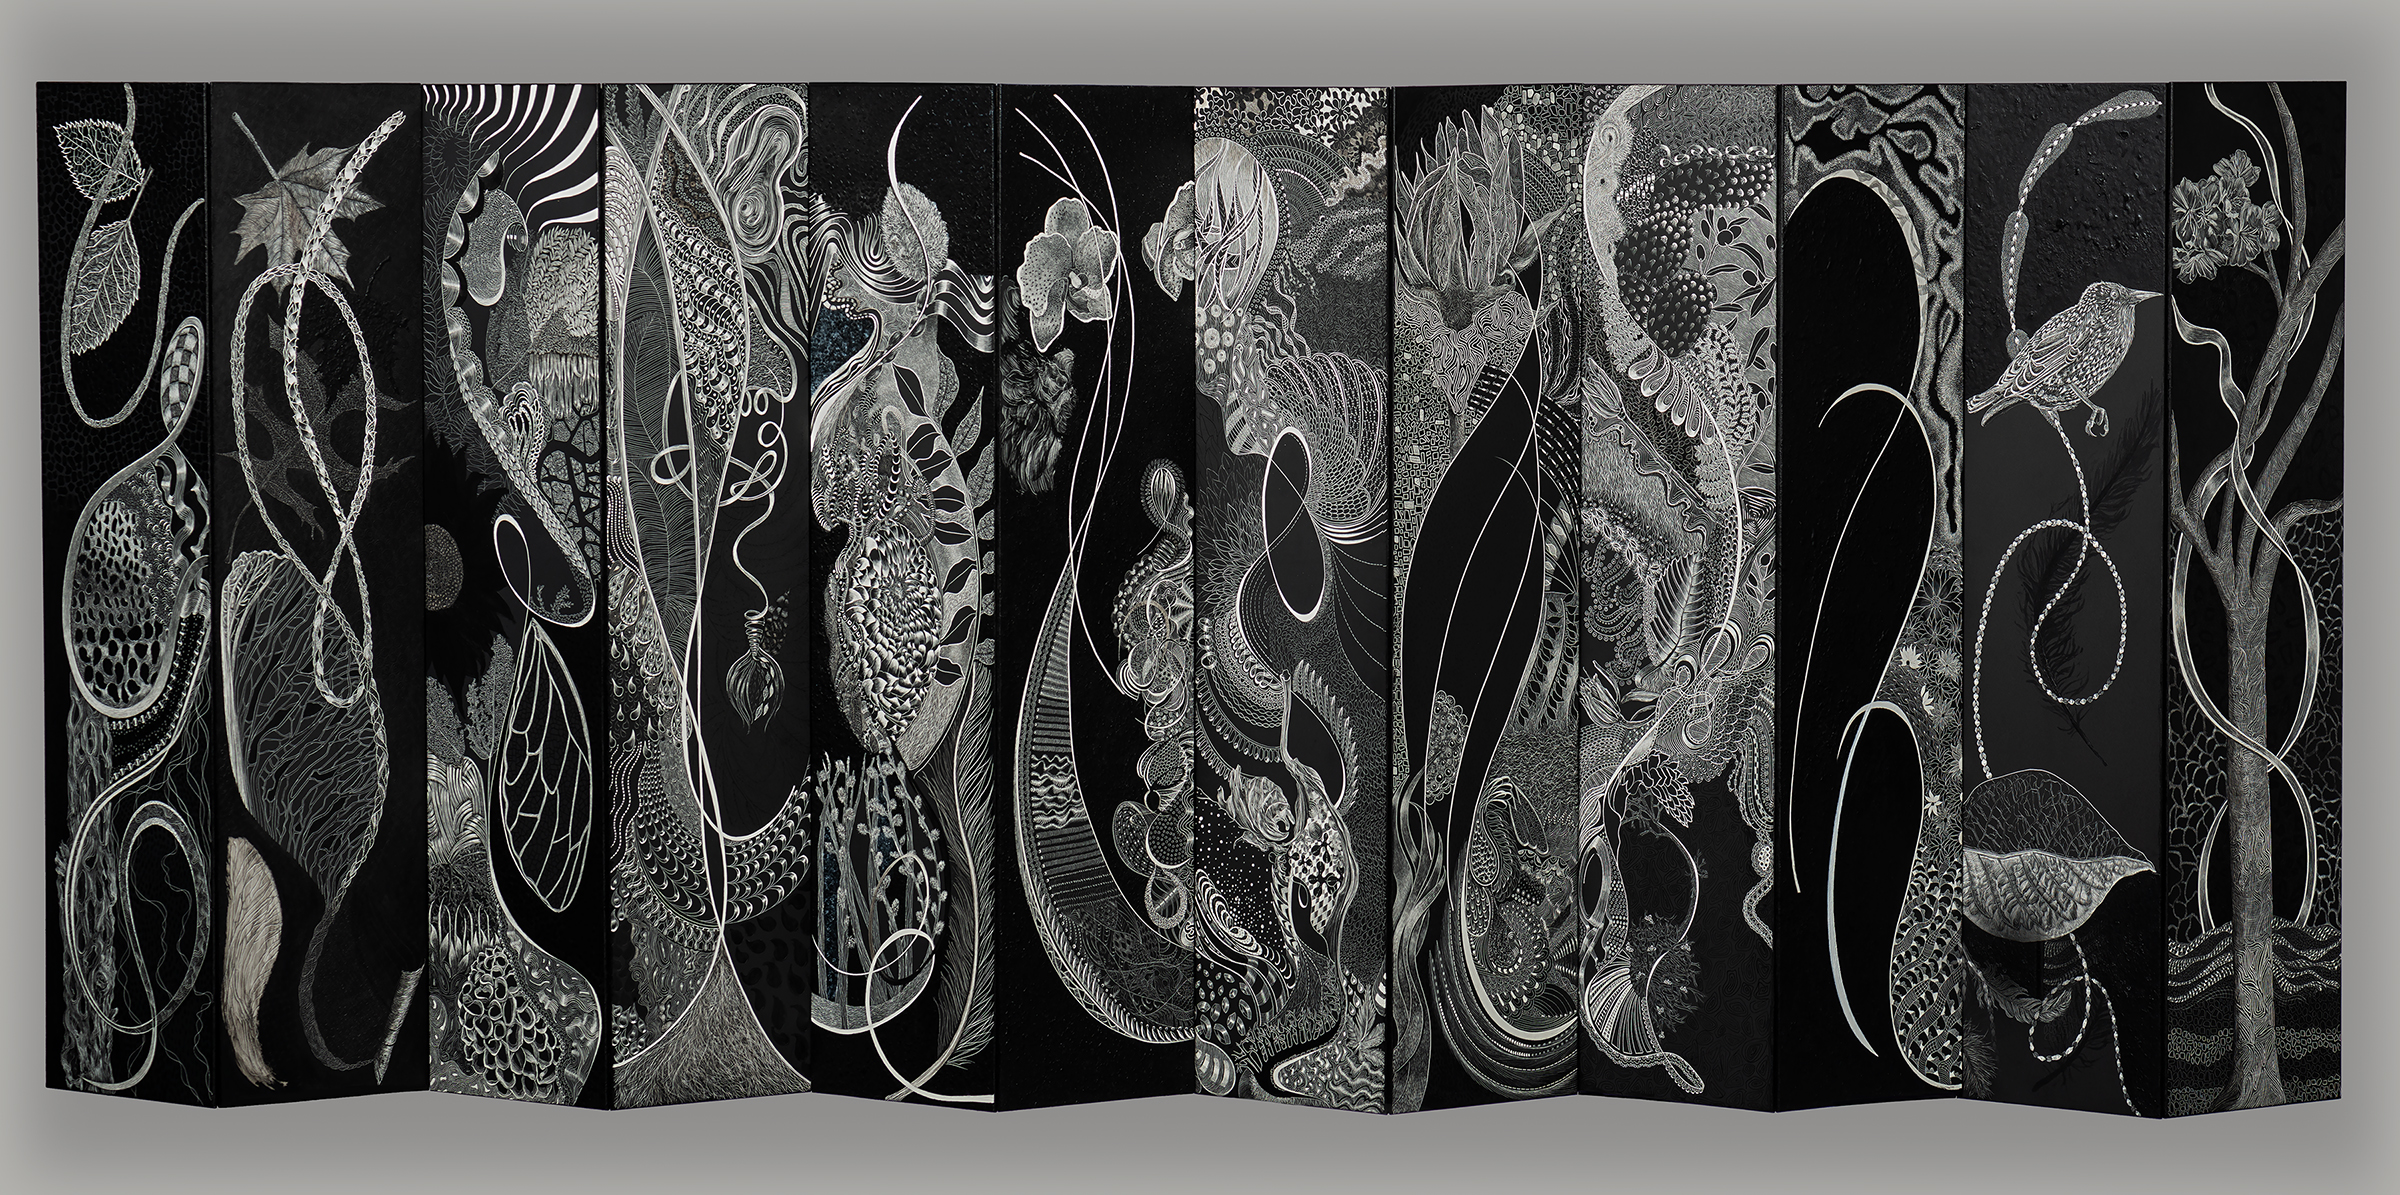 "ACROSS THE BOARD 1  #3182 Black Scratchboard, Acrylic Paint, Ink, Medium 21"" x 48"" x 3"" 2018 $16,000 Studio"